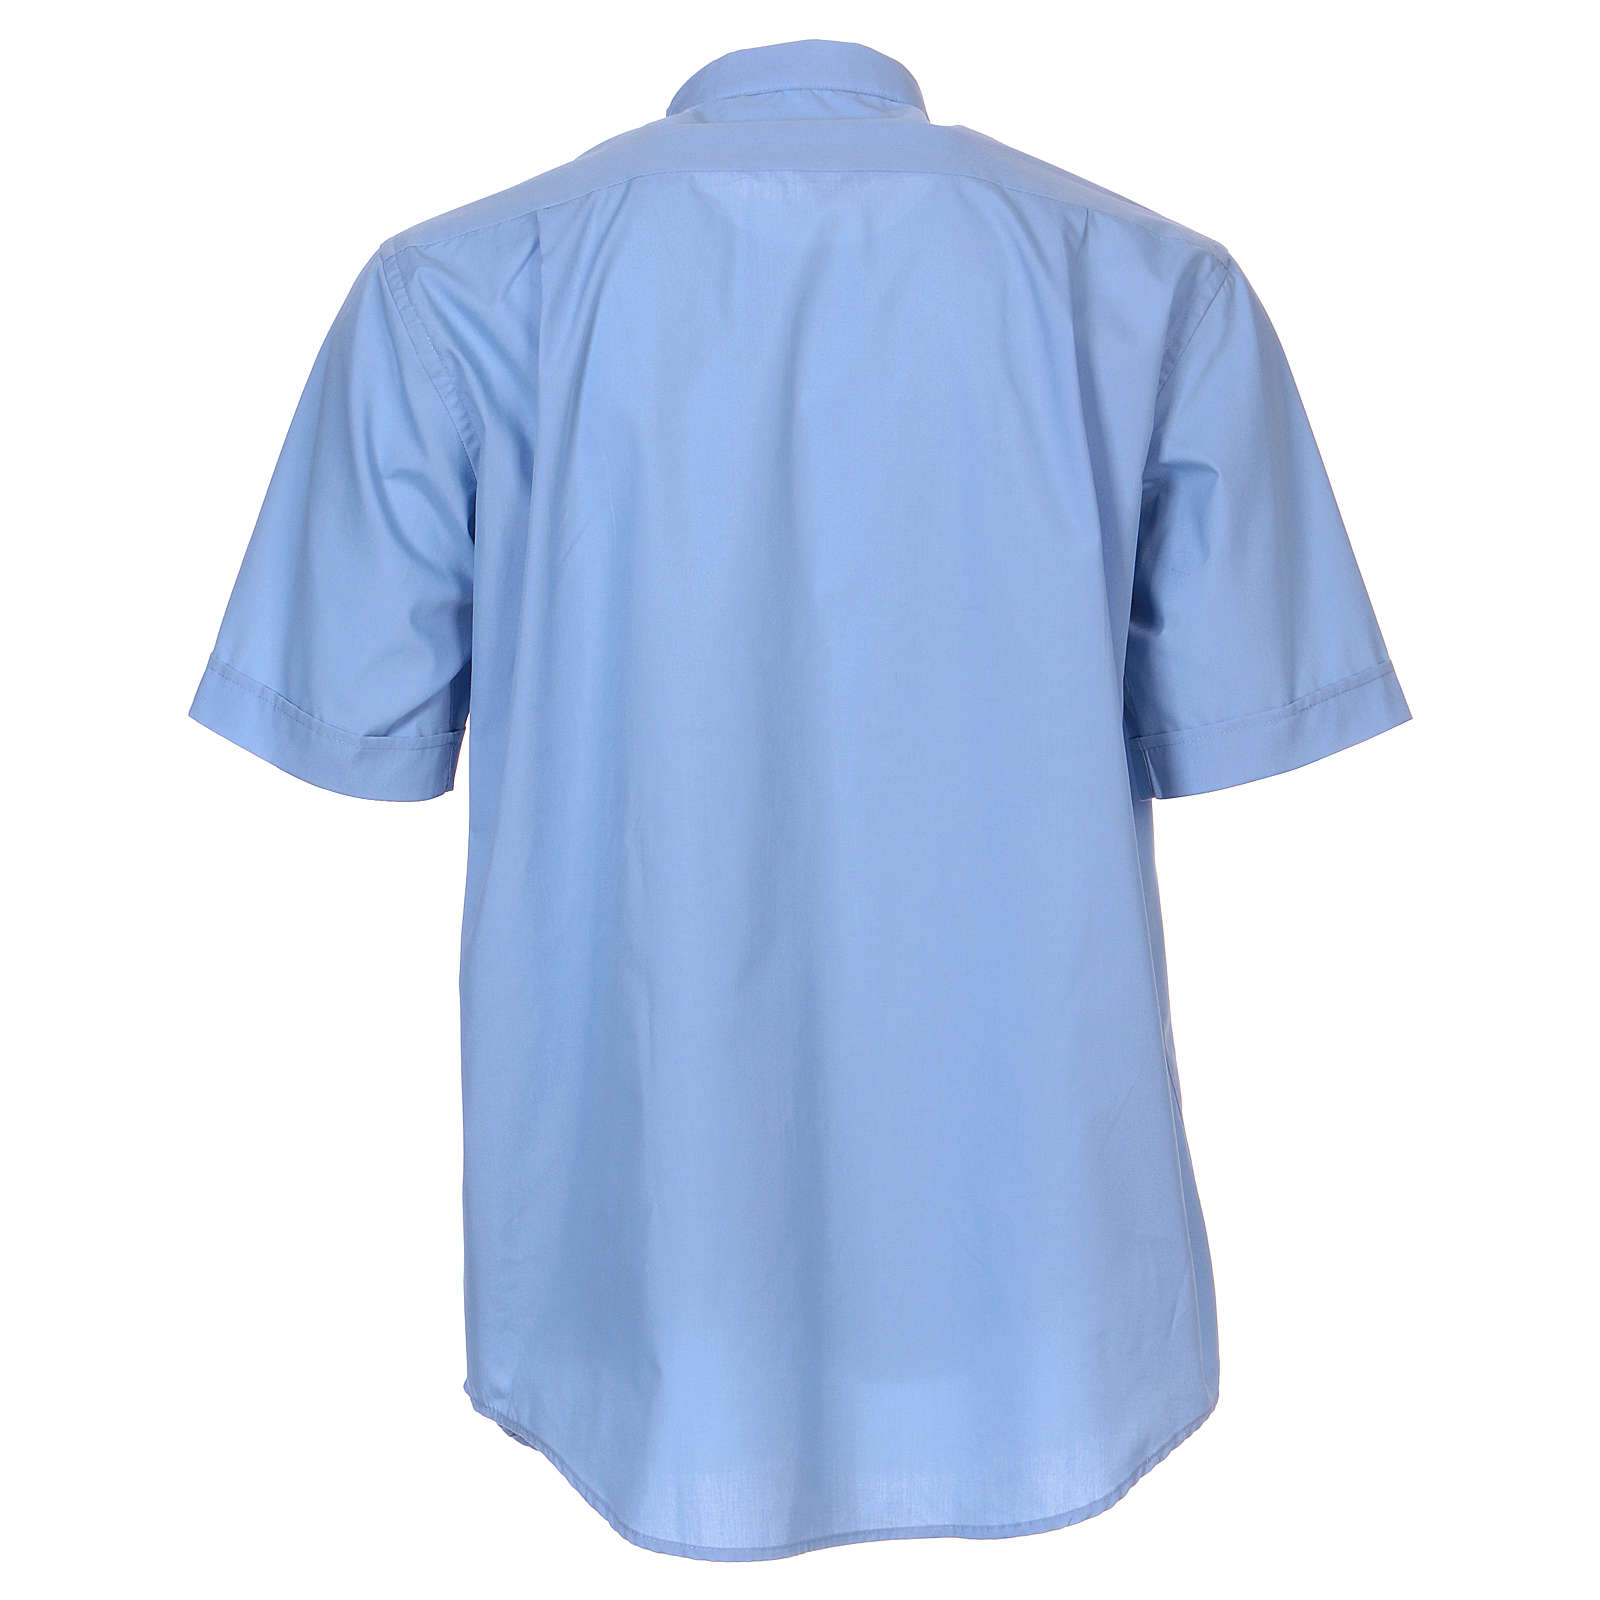 Short-sleeved clergy shirt in sky blue cotton blend In Primis 4